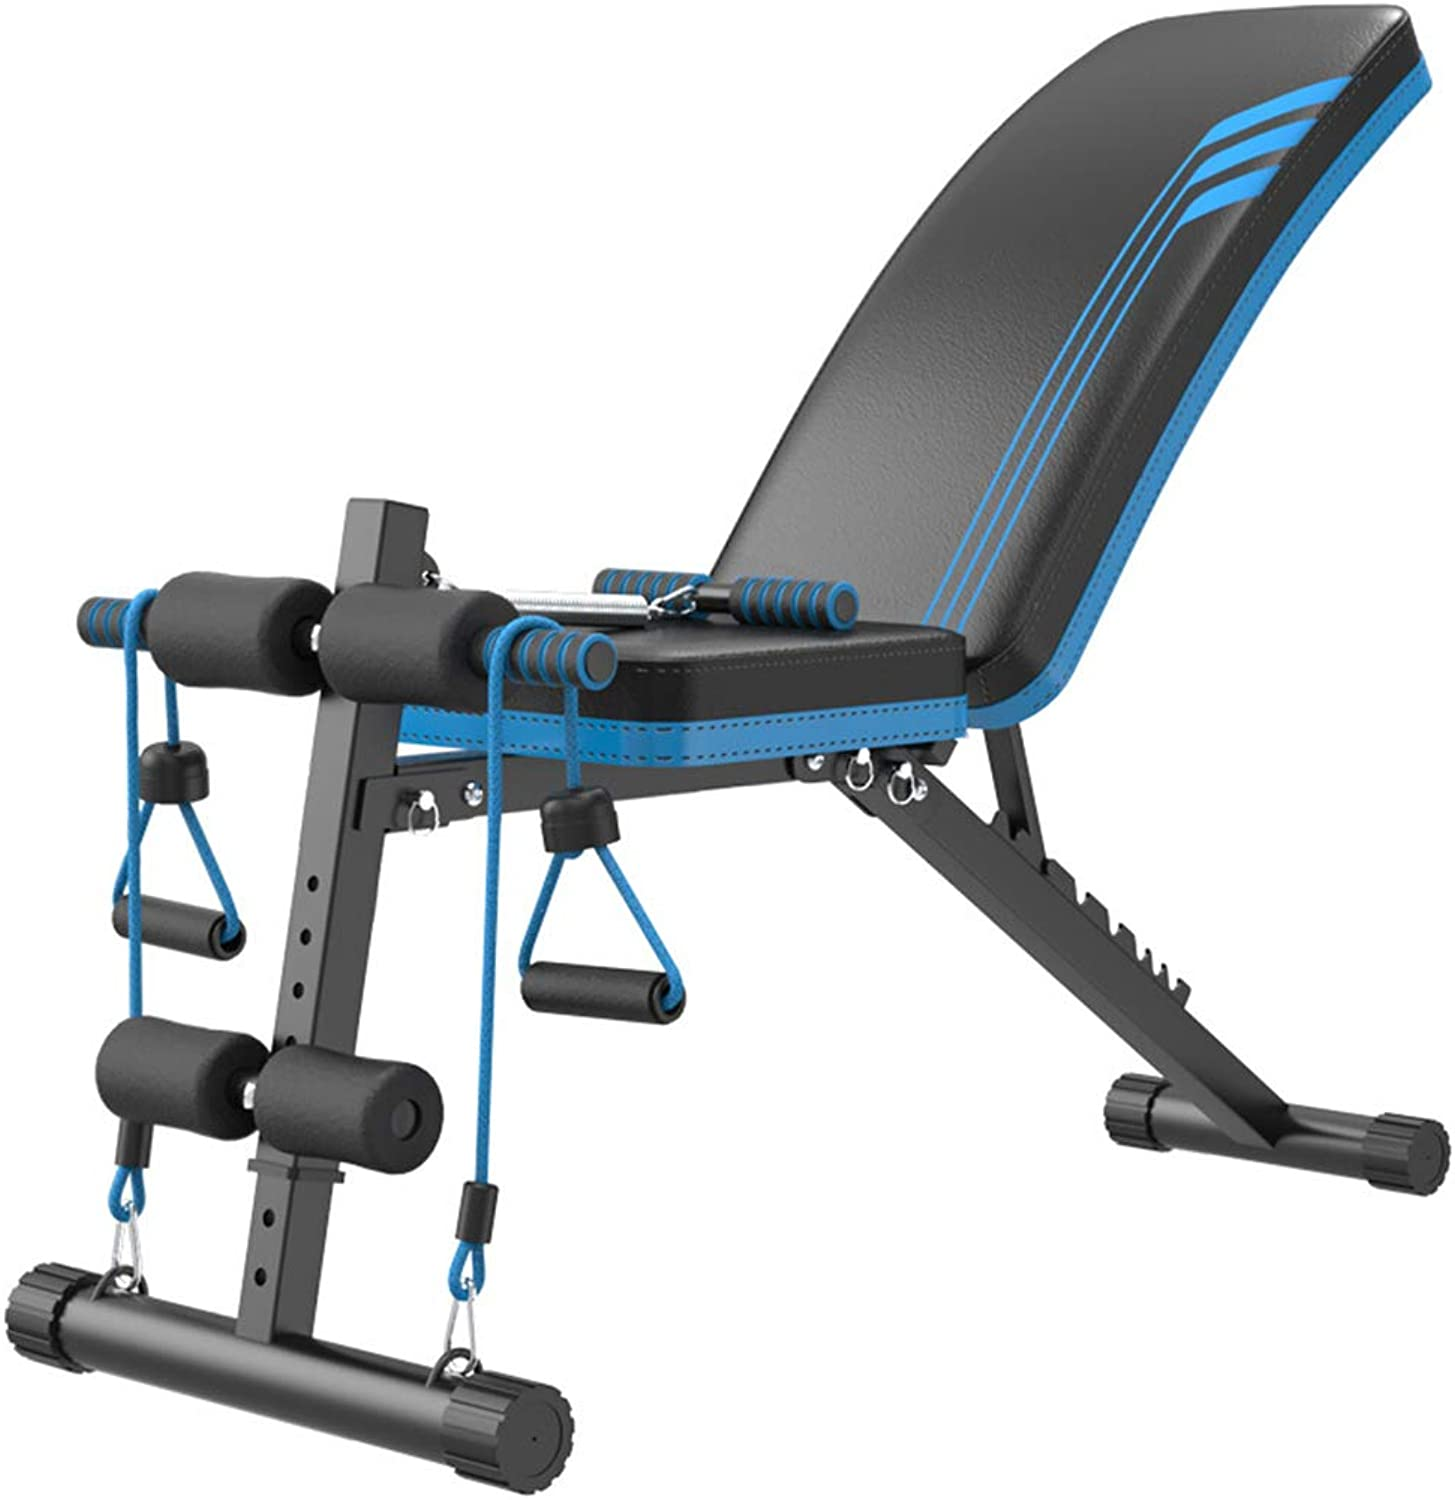 Multifunctional Supine Board Abdominal Muscle Folding Exercise Equipment, Household